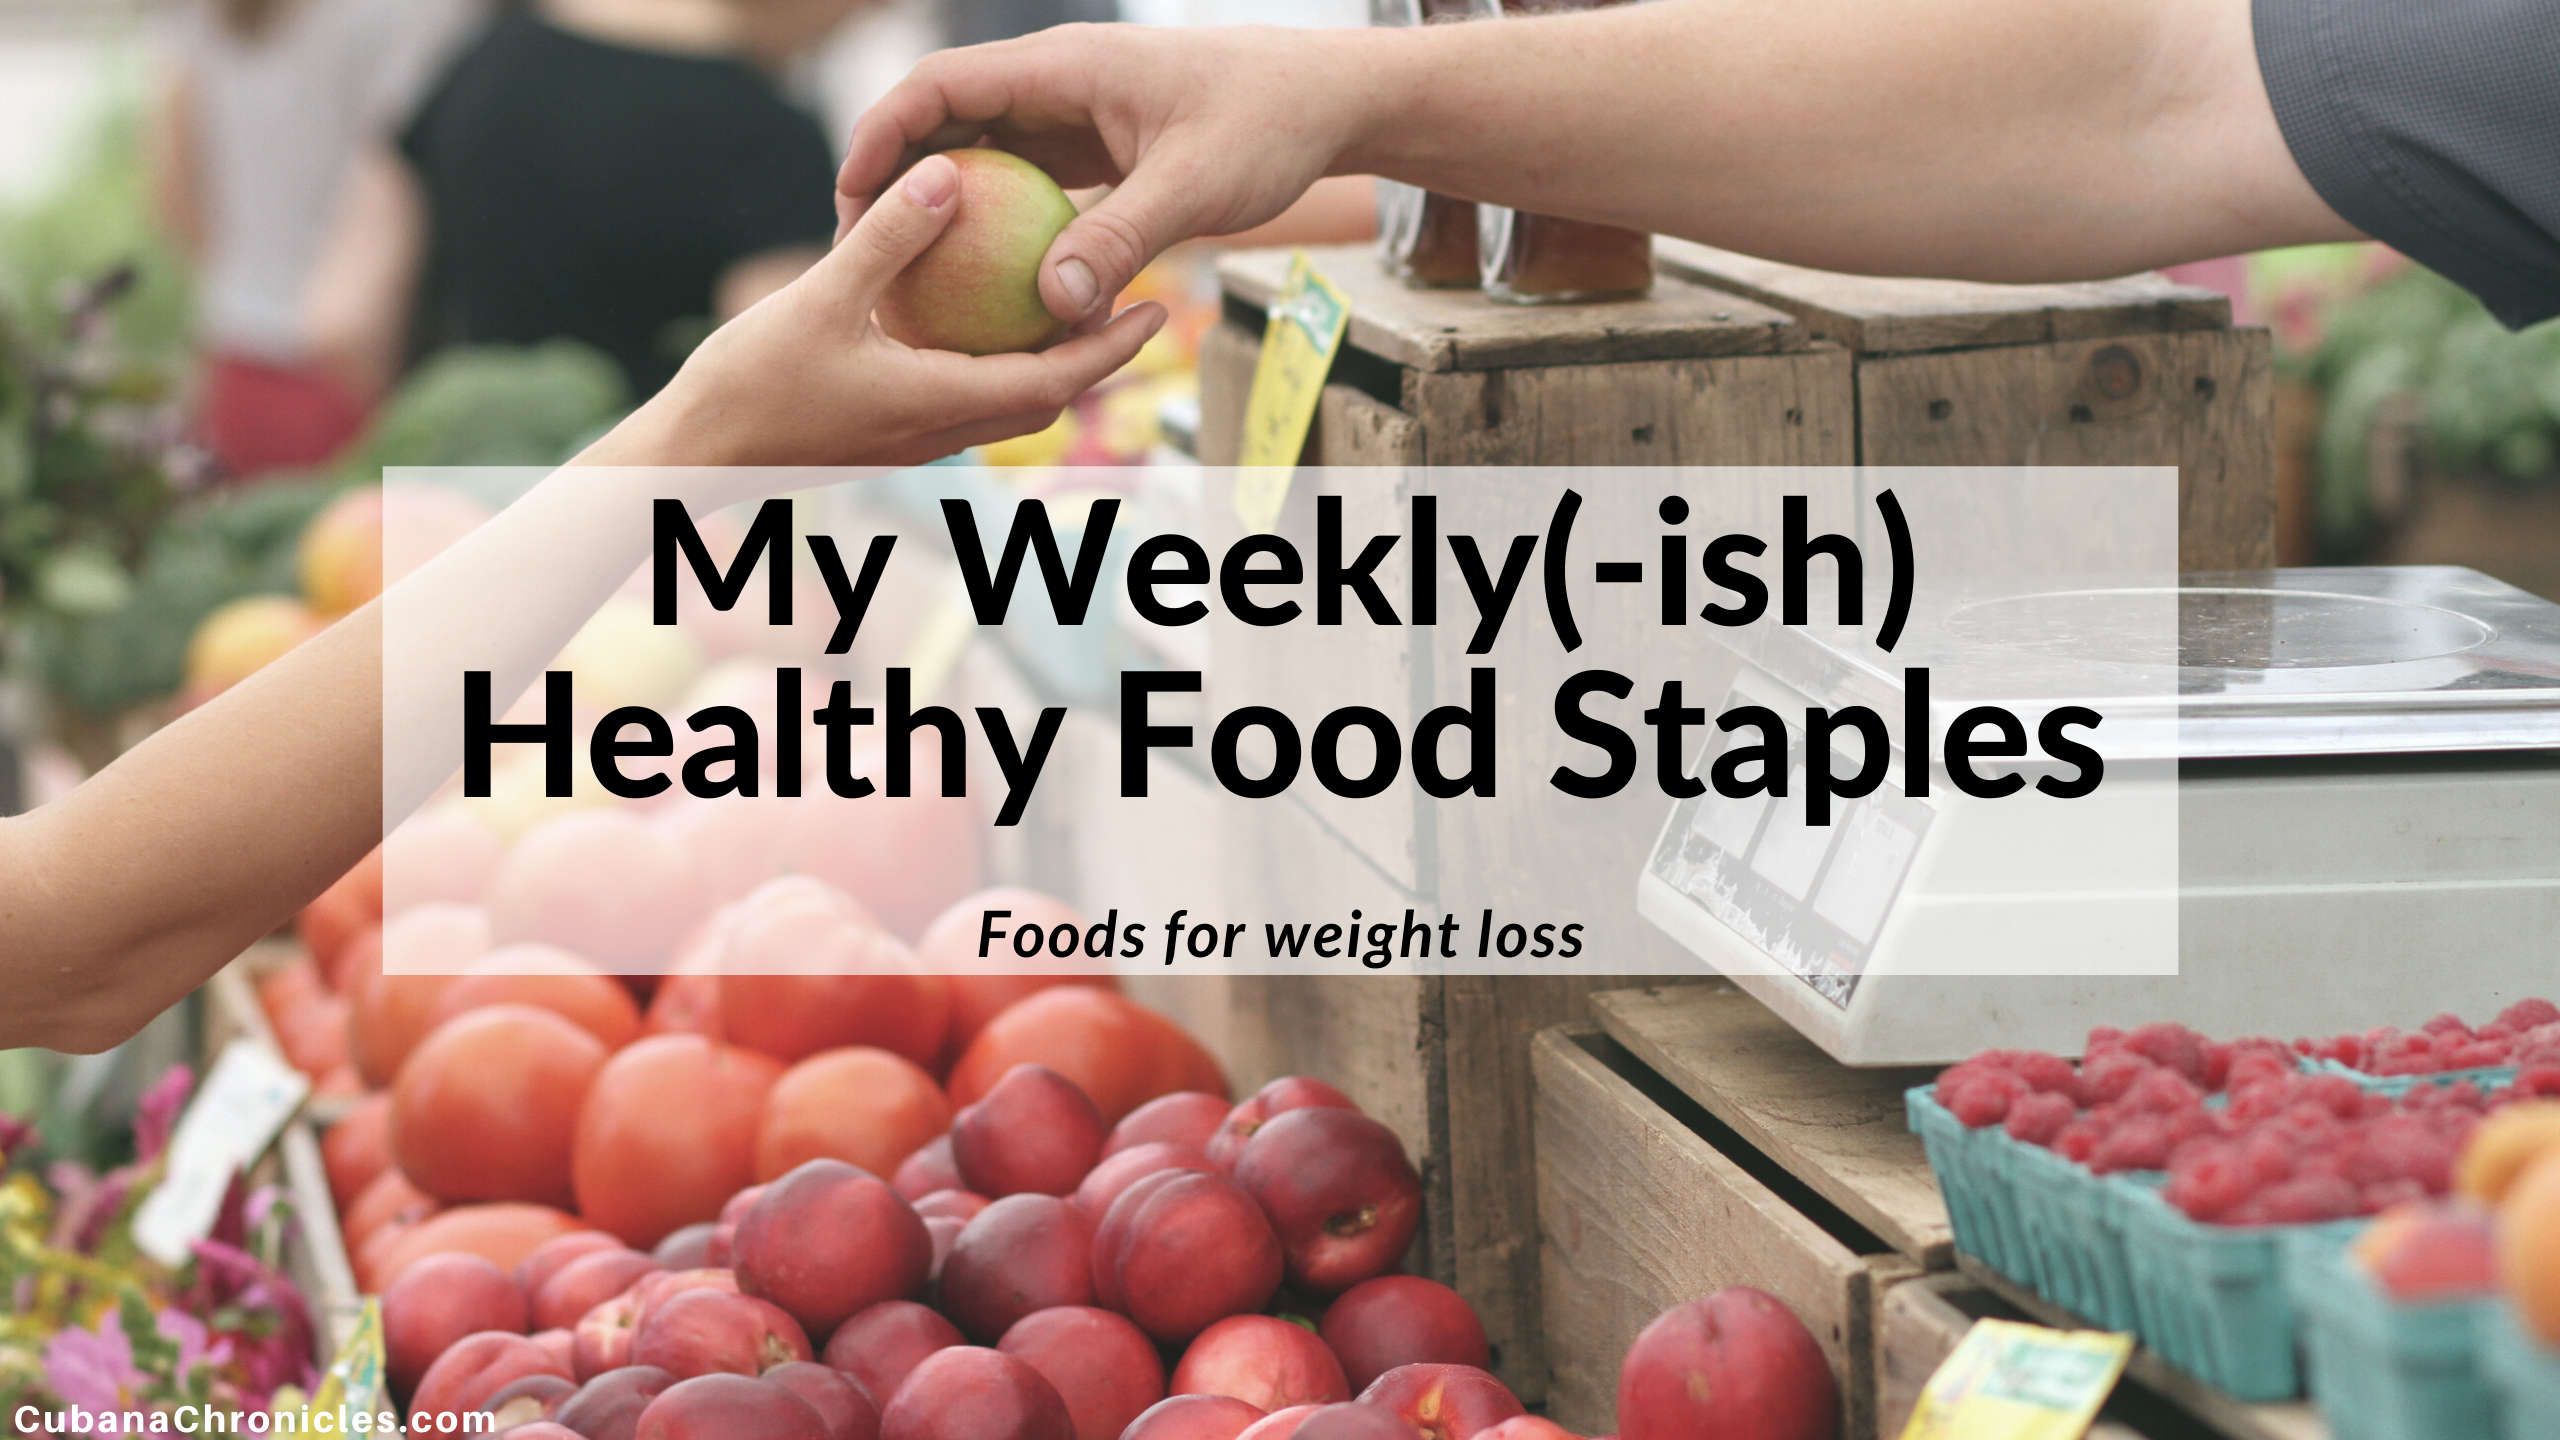 My Weekly(-ish) Healthy Food Staples